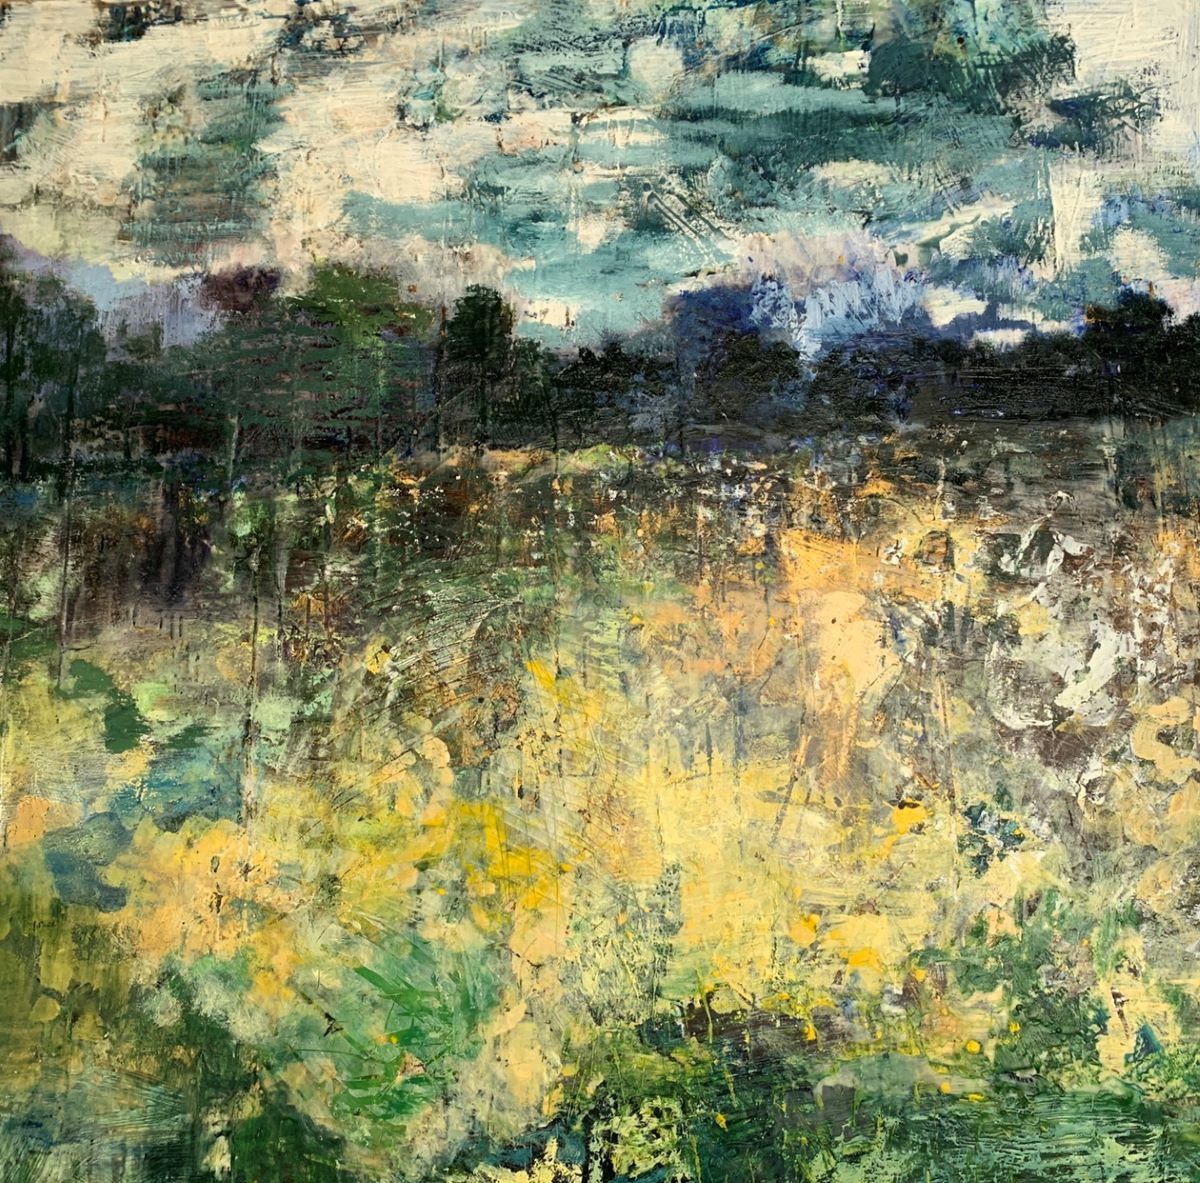 Williams_field of dreams 48 inches x 48 Inches Encaustic with Oil